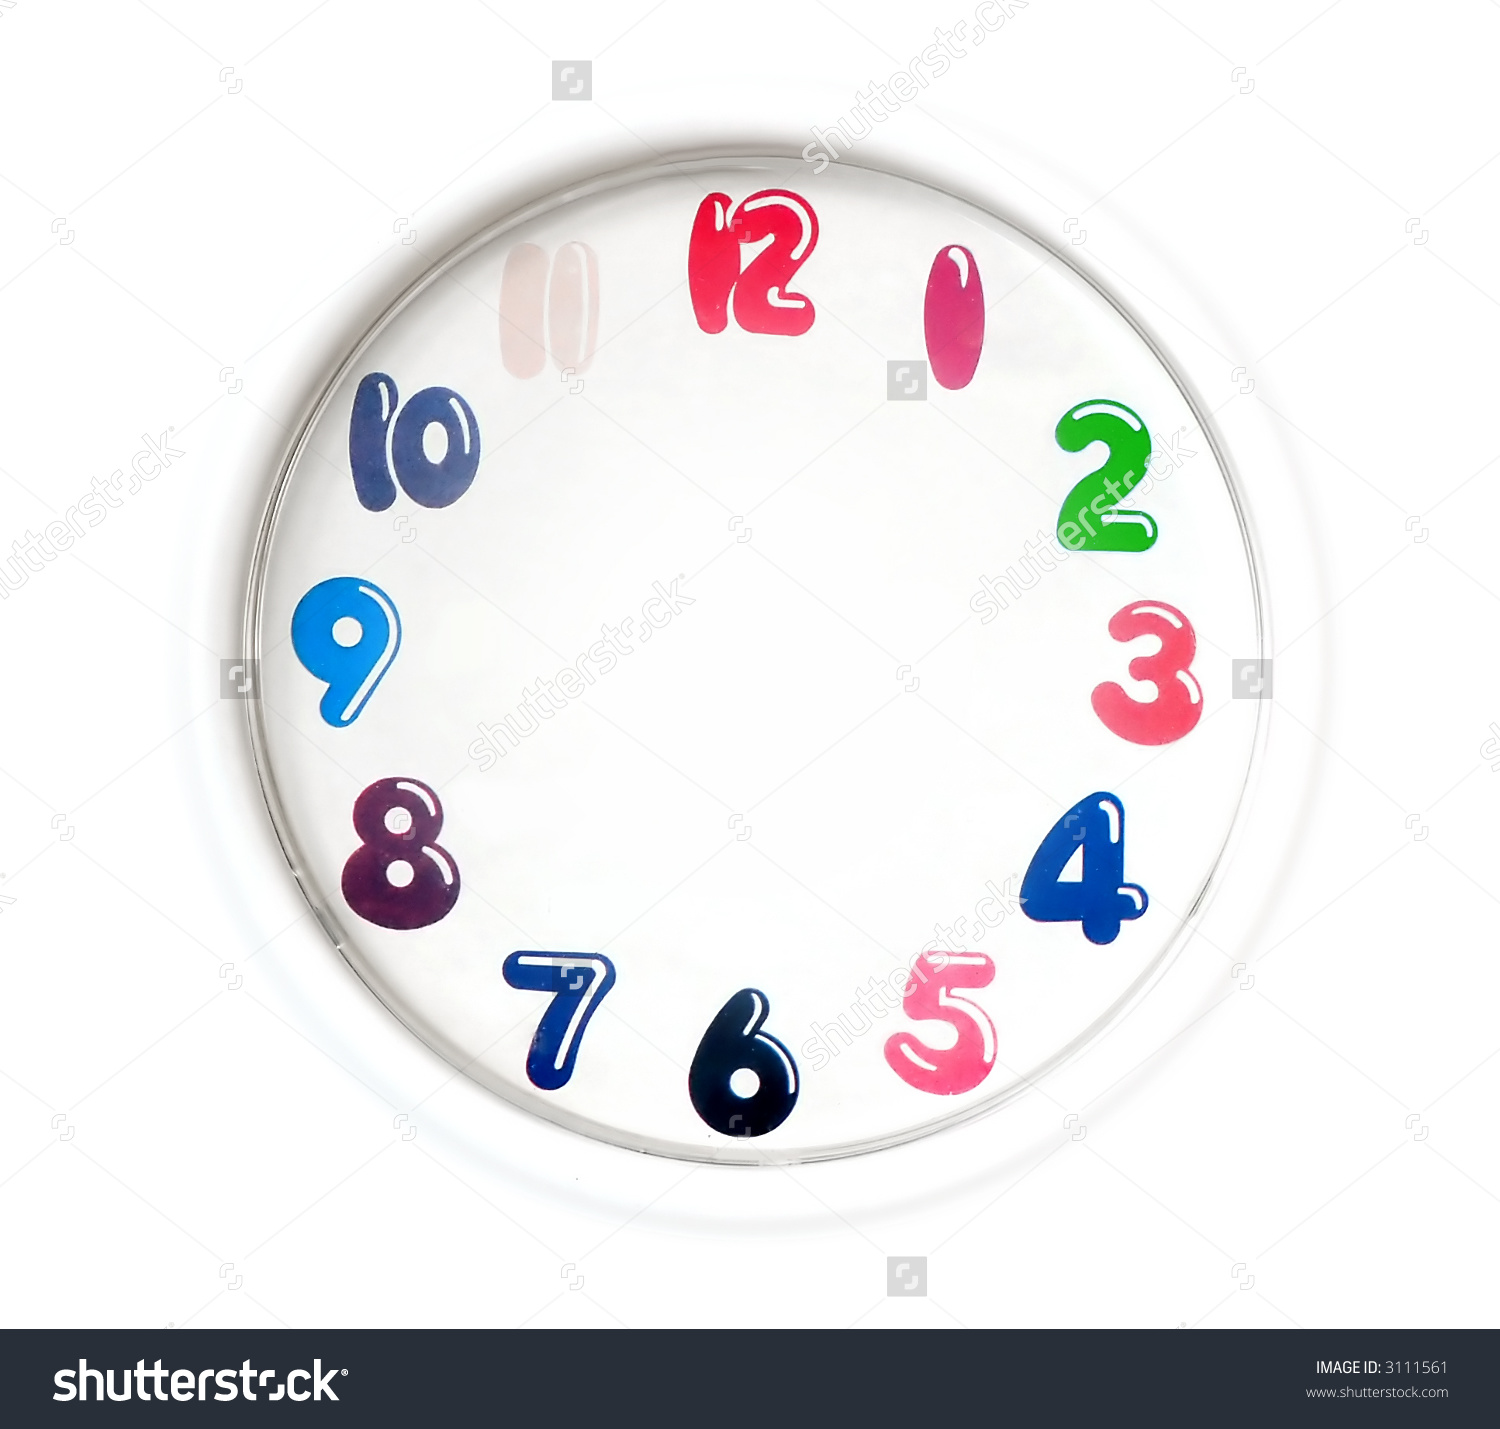 Clock clipart with no hands png royalty free stock Clock clipart no hands colorful - ClipartFox png royalty free stock